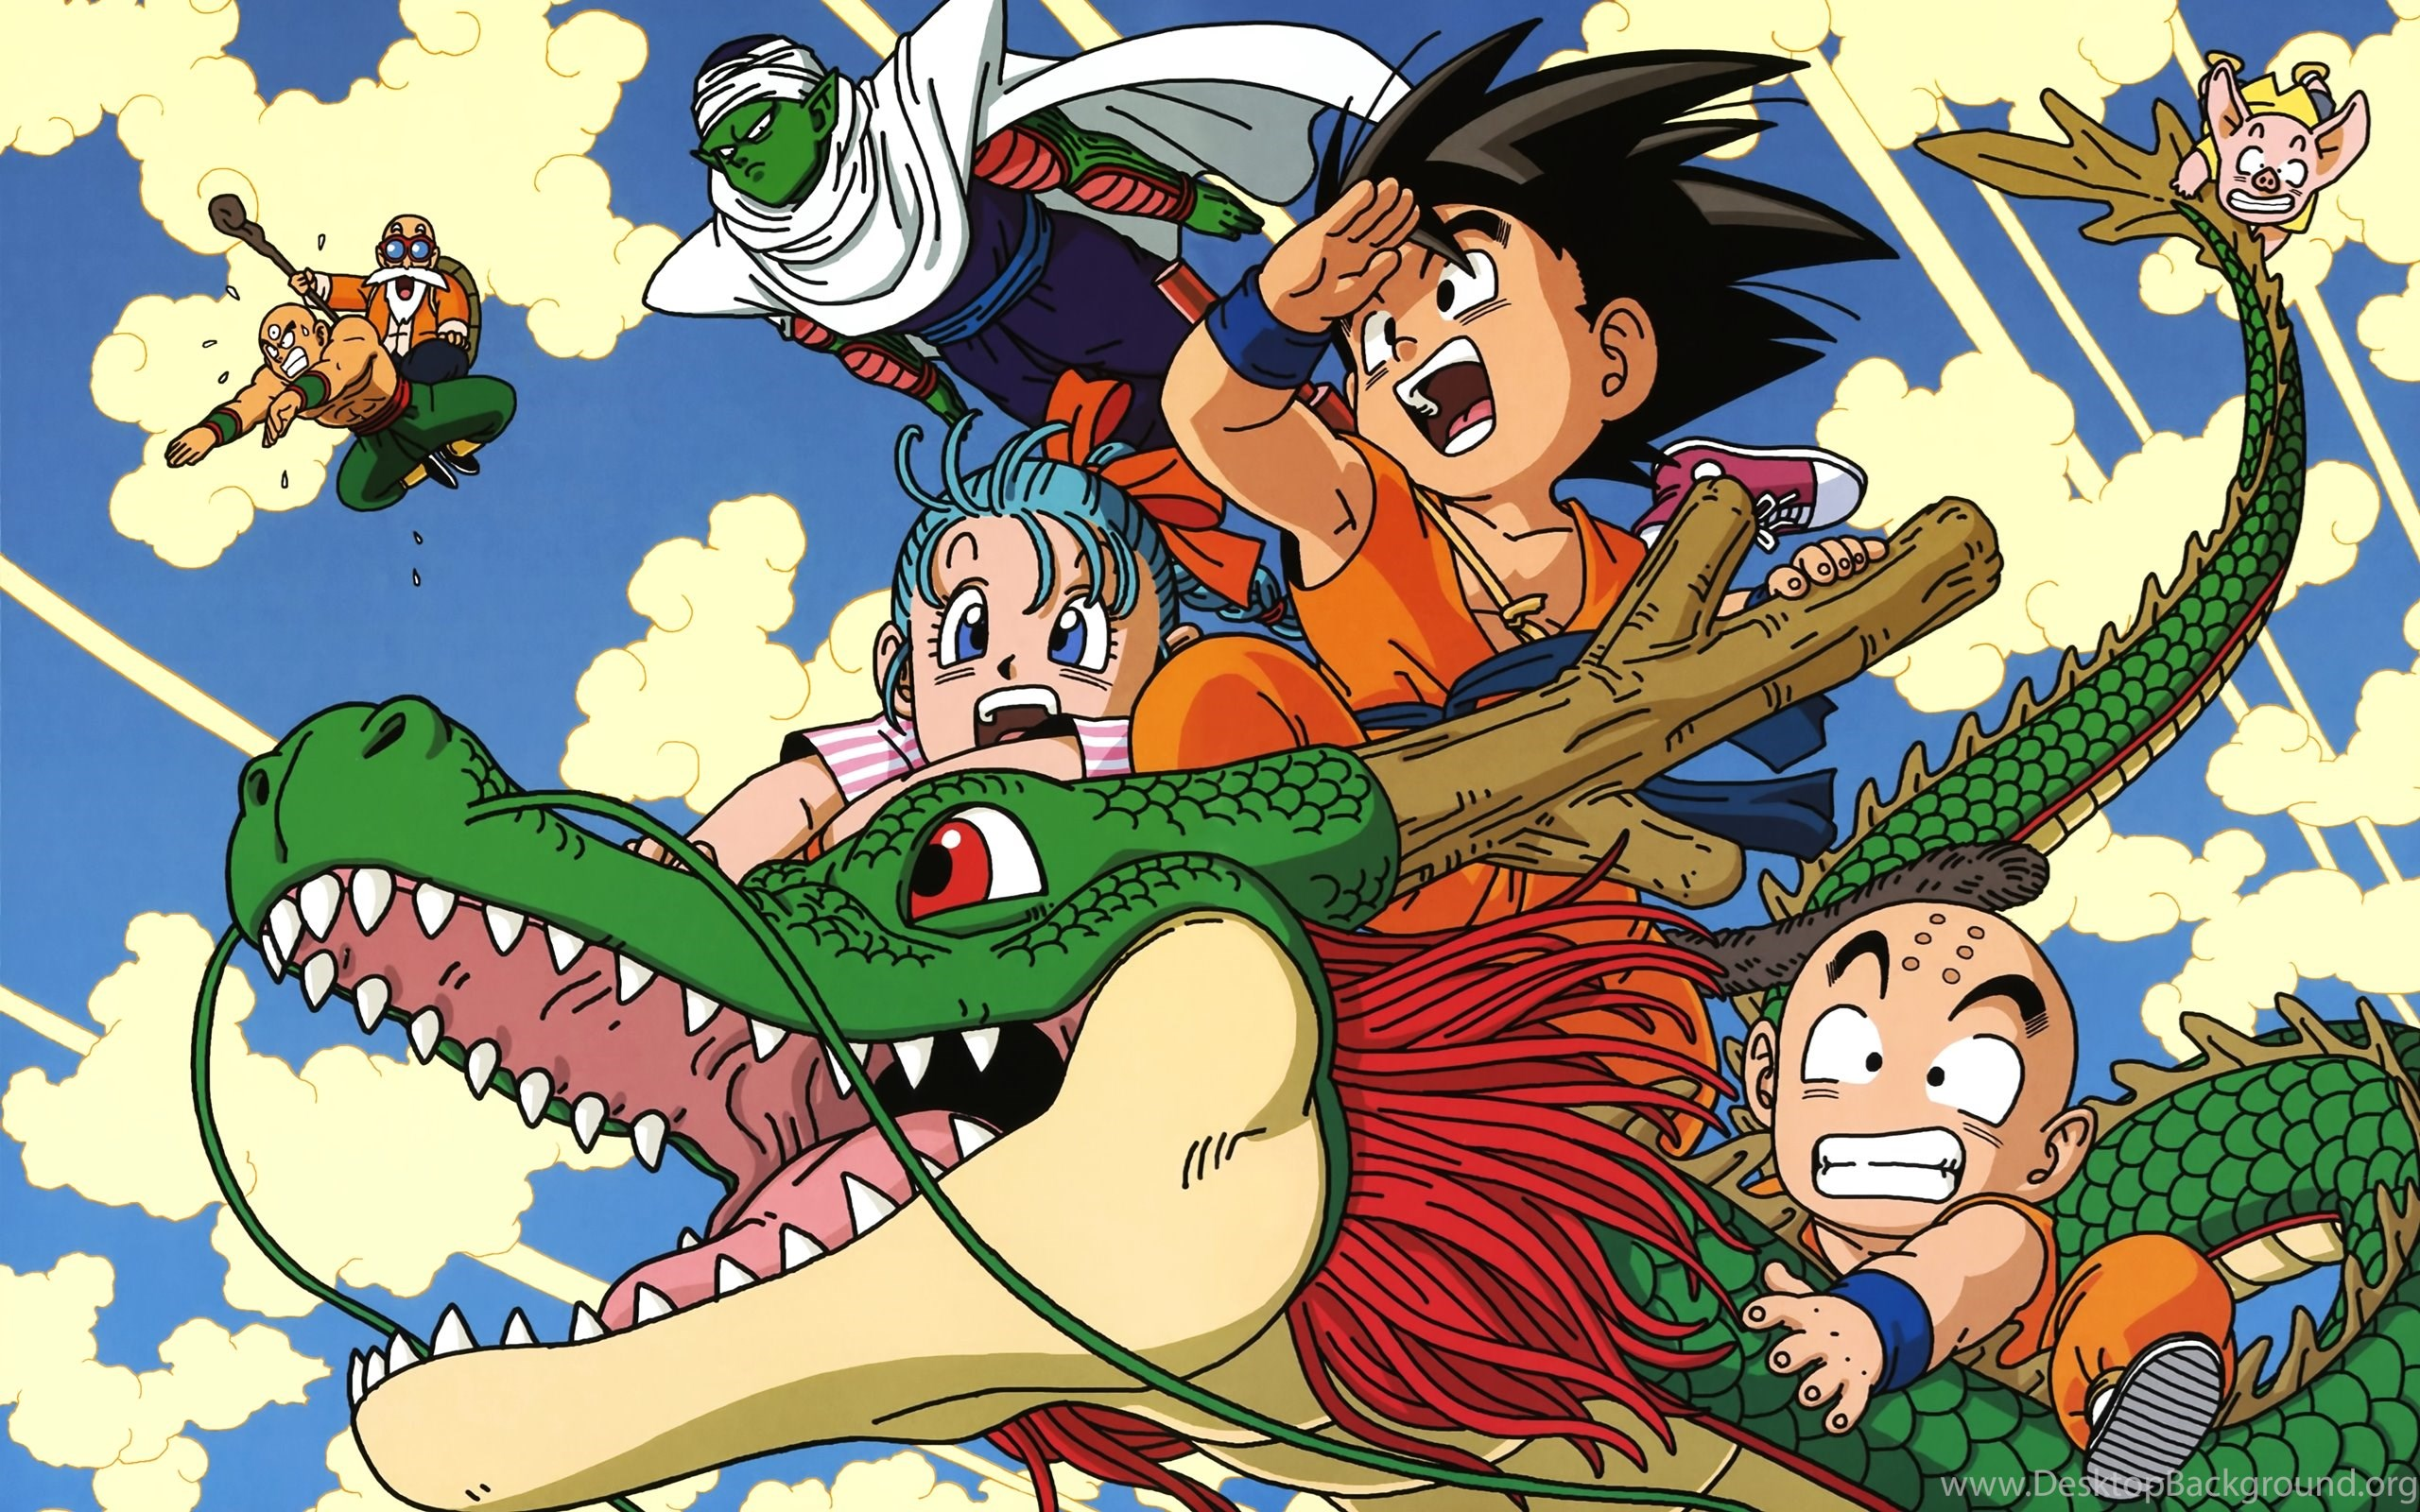 Dragon Ball Z Wallpapers For Iphone 6 Cartoons Wallpapers Desktop Background